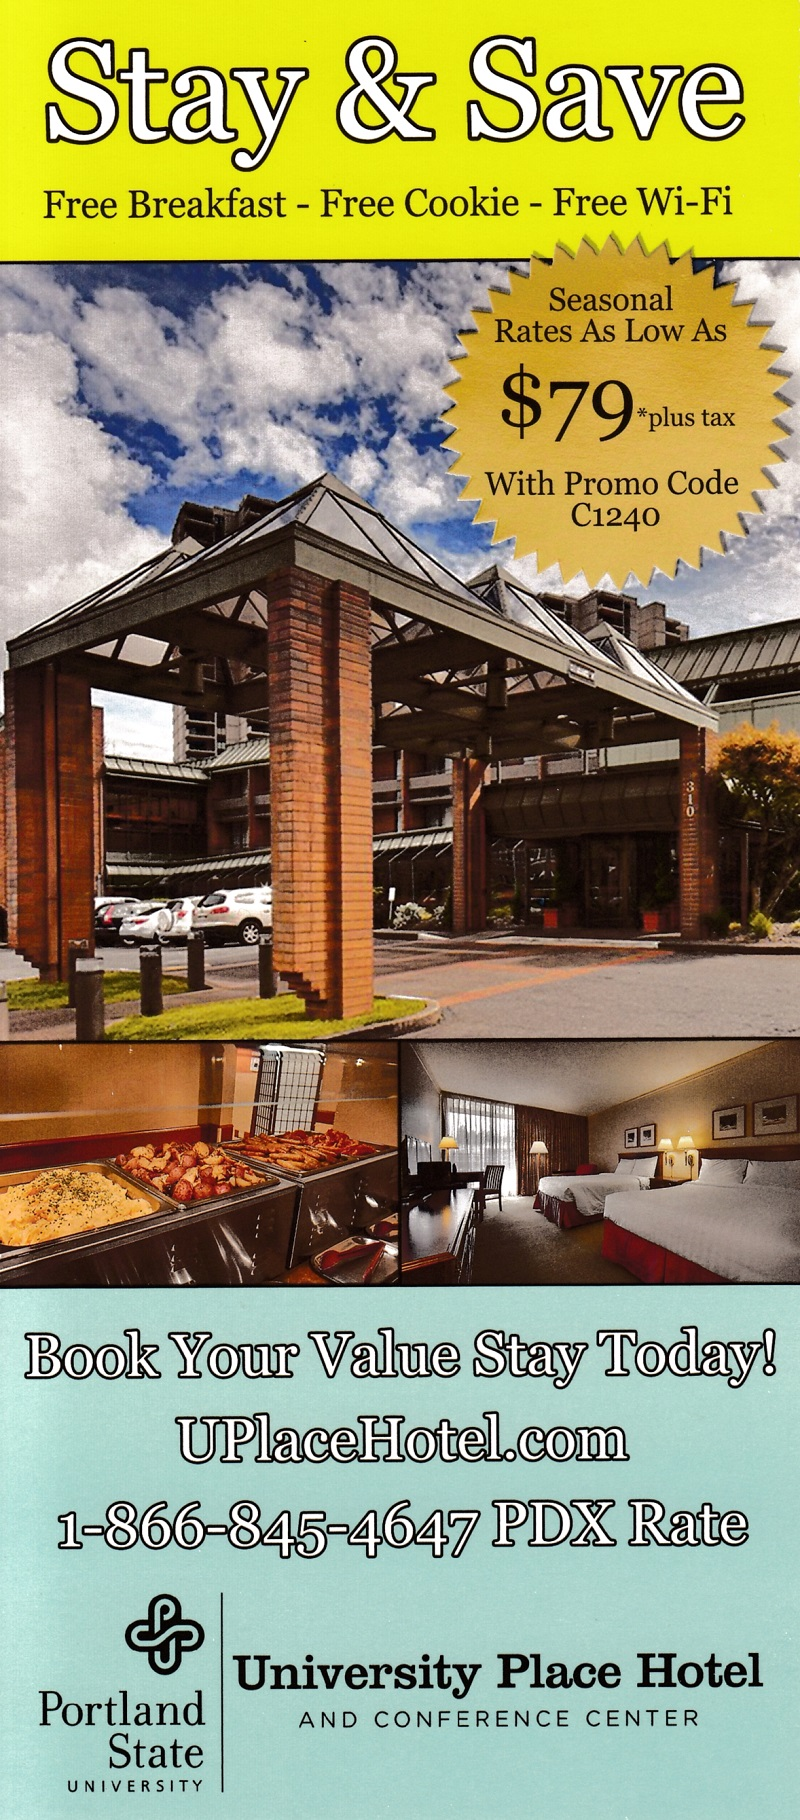 University Place Hotel brochure thumbnail